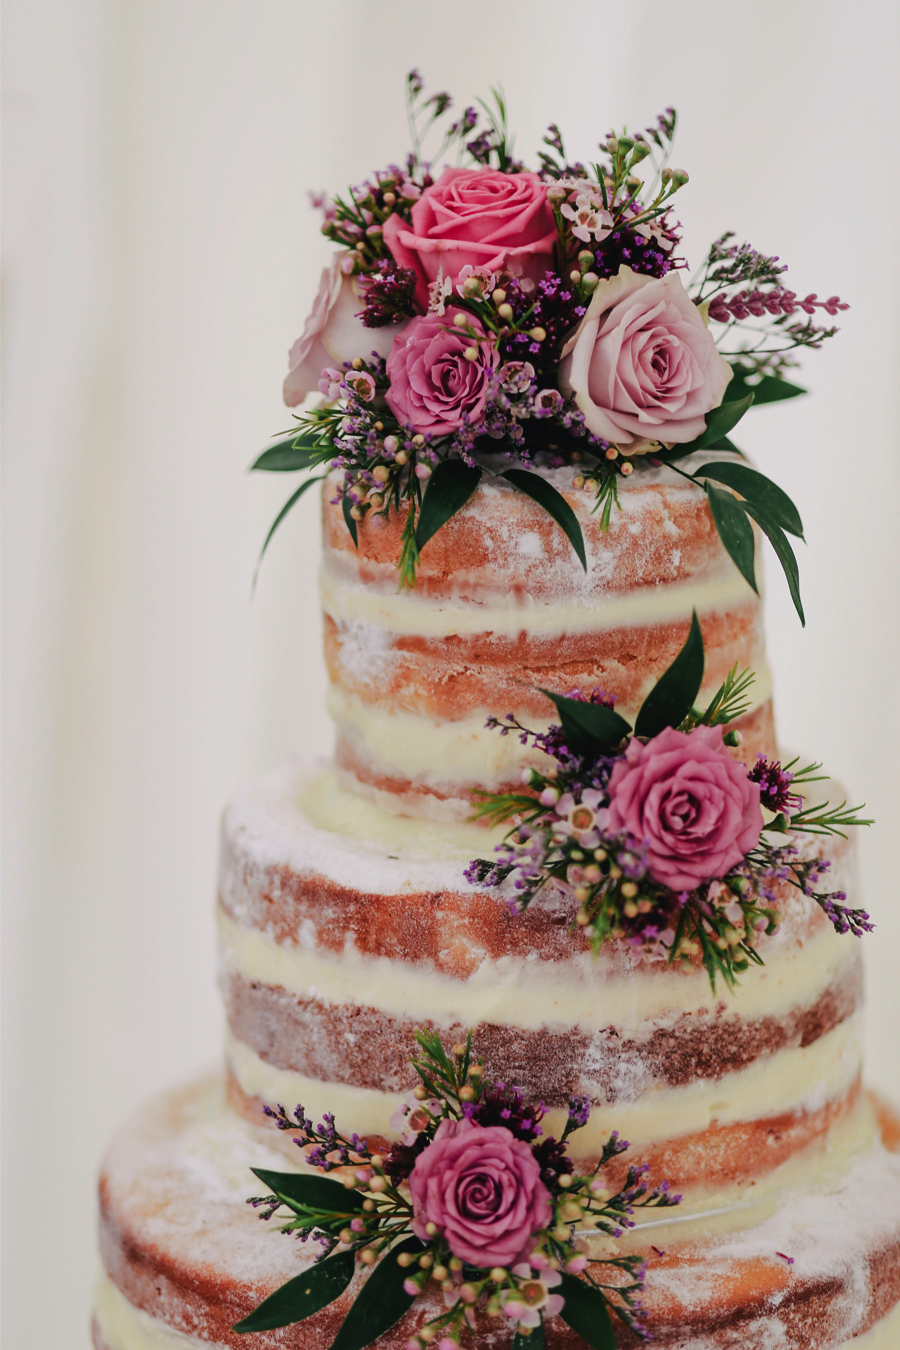 fruit-wedding-cake-trends-2019_1.jpg